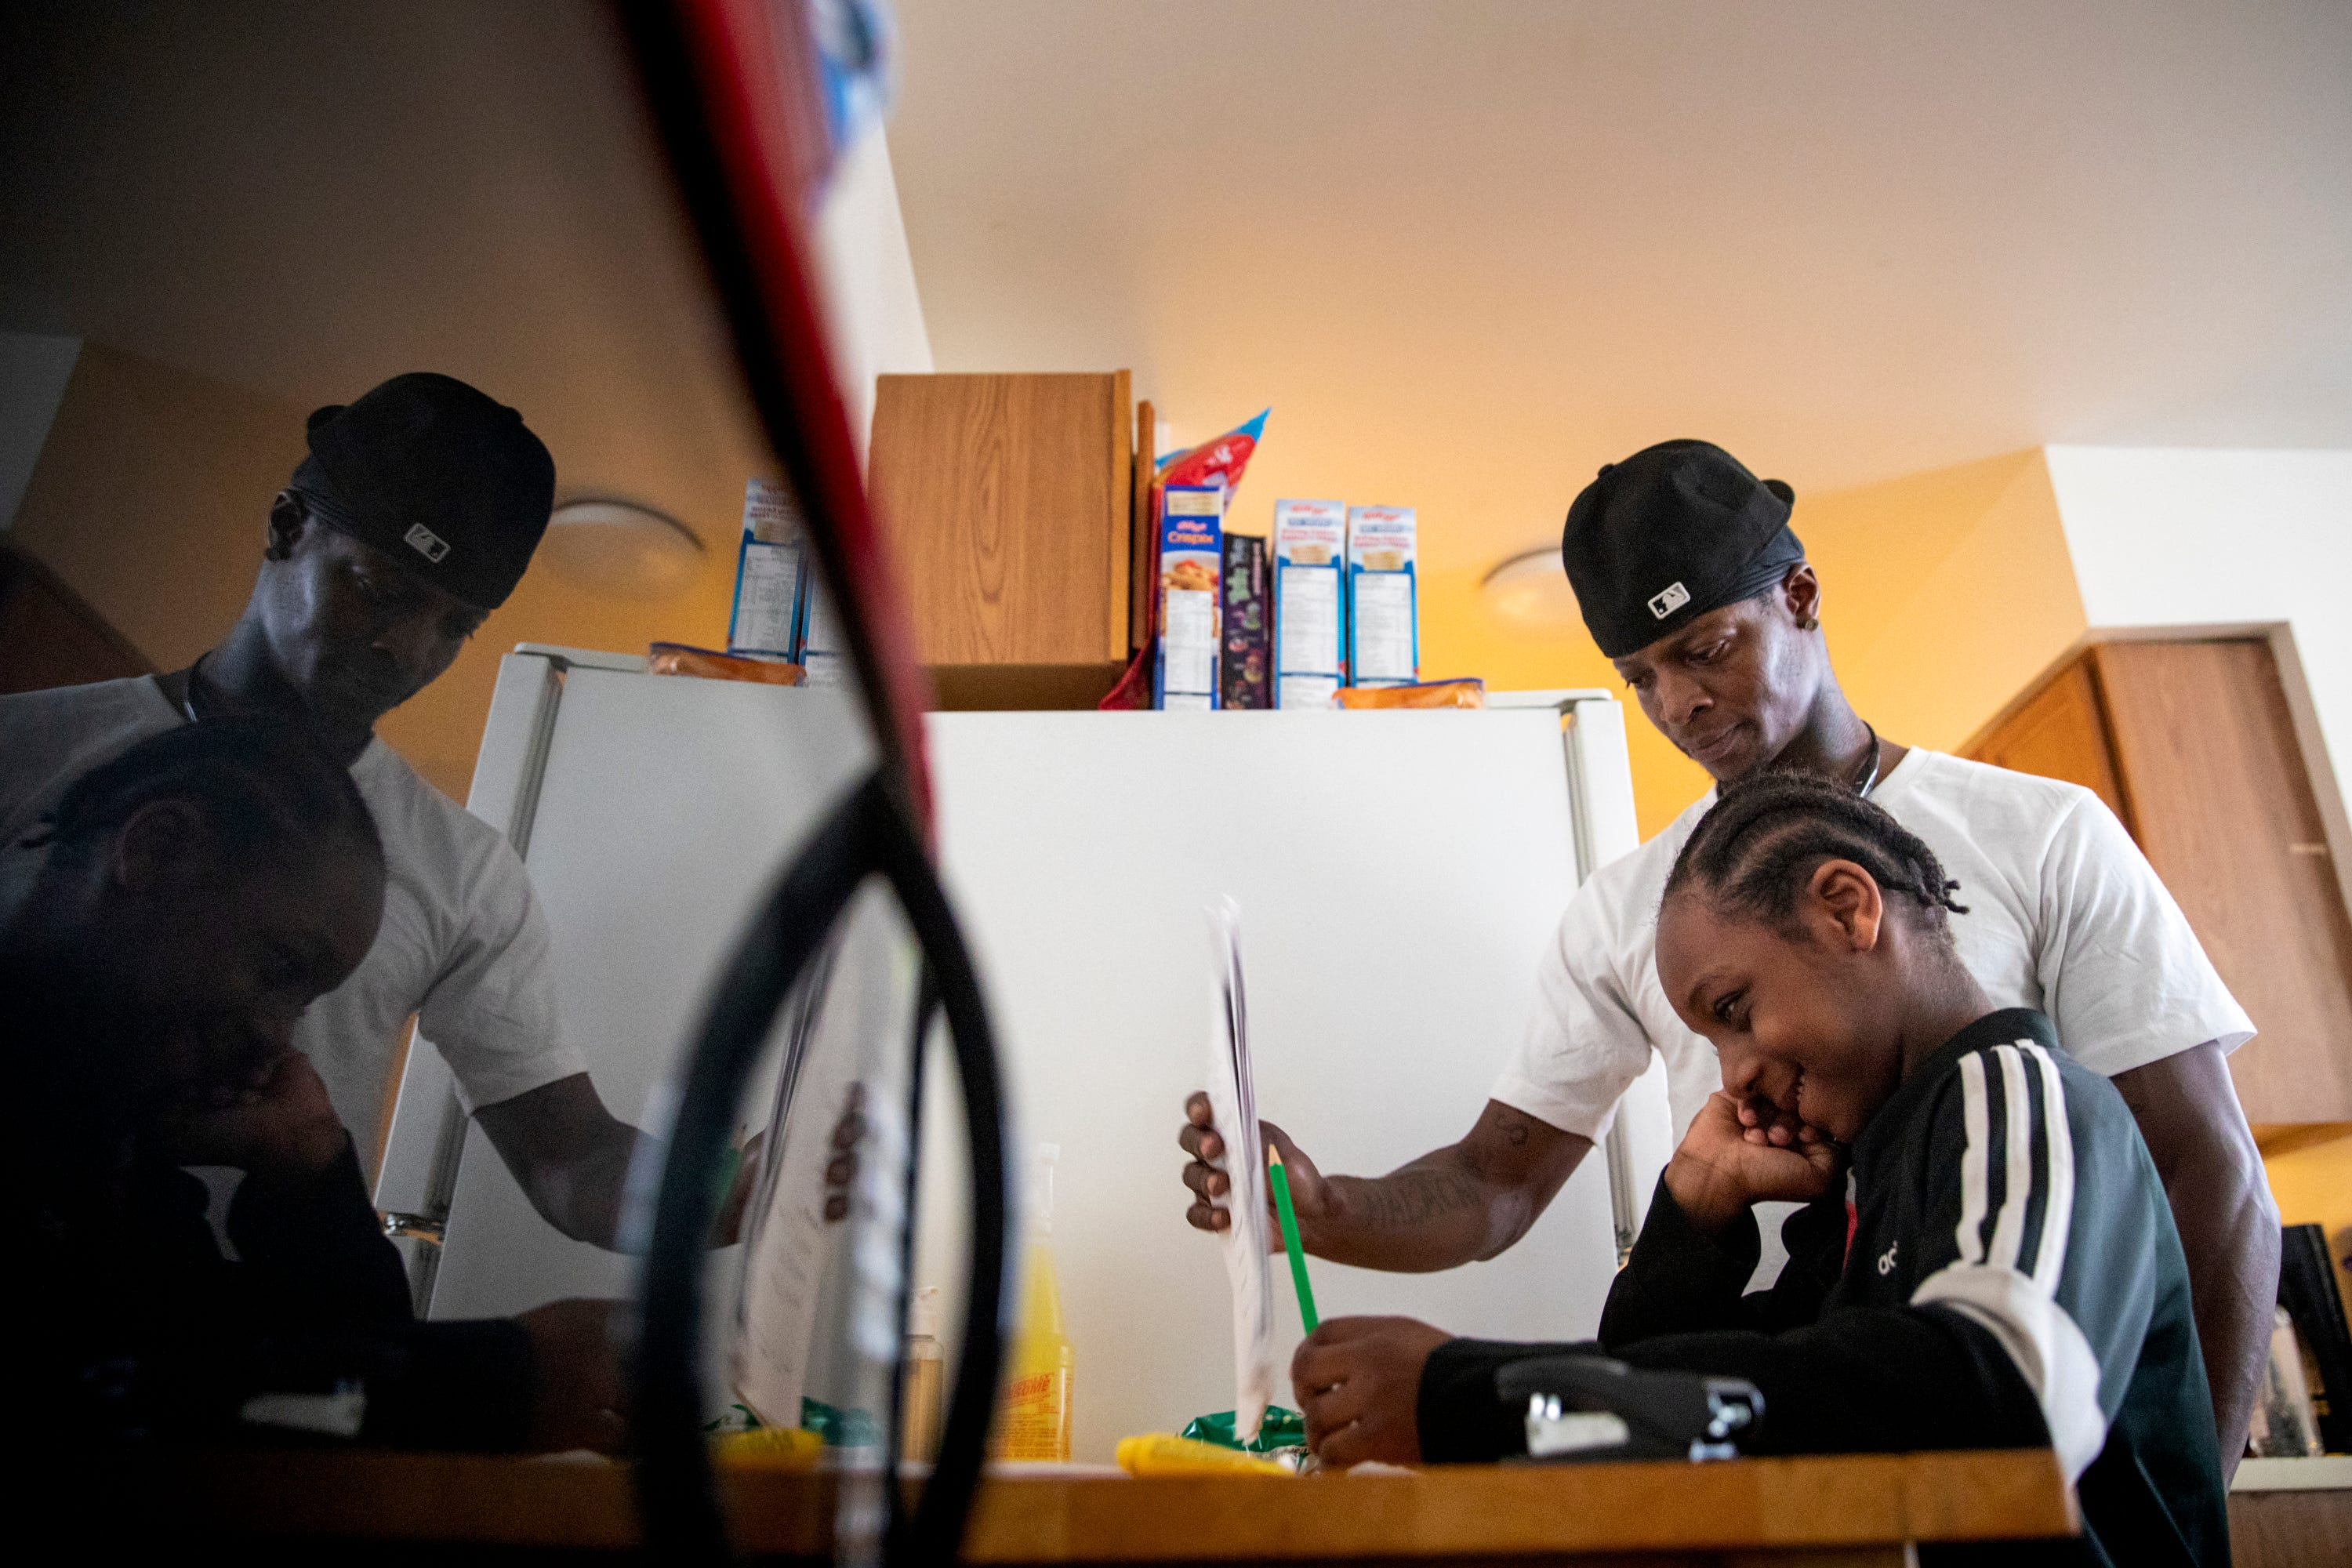 Sinaca Wagoner, Sr., helps his son Sinaca Wagoner, Jr., 7, with his school work in their apartment in Lower Price Hill on Thursday, April 2, 2020. Sinaca Jr. is in the second grade at Cincinnati College Preparatory Academy.